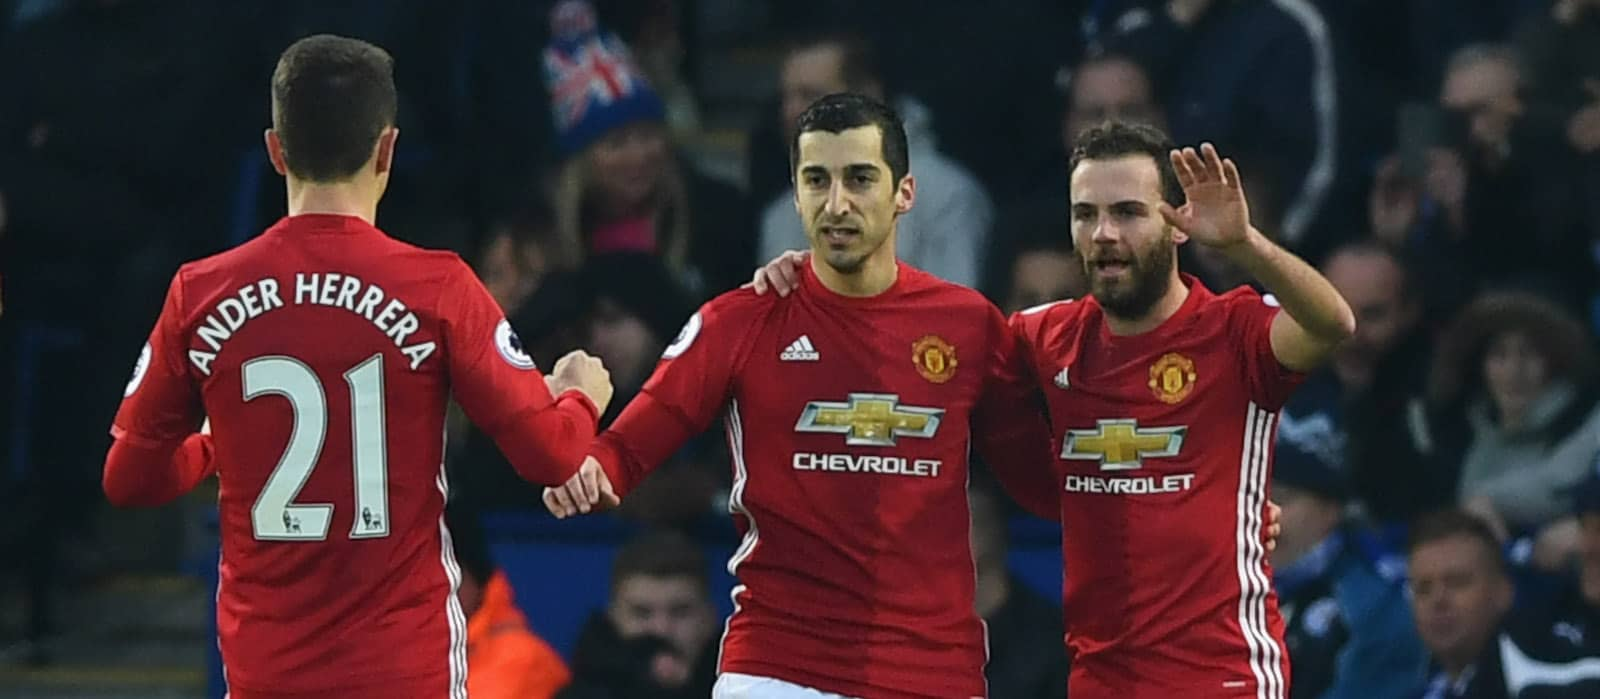 Valerenga vs Manchester United: Potential XI with Juan Mata and Ander Herrera returning